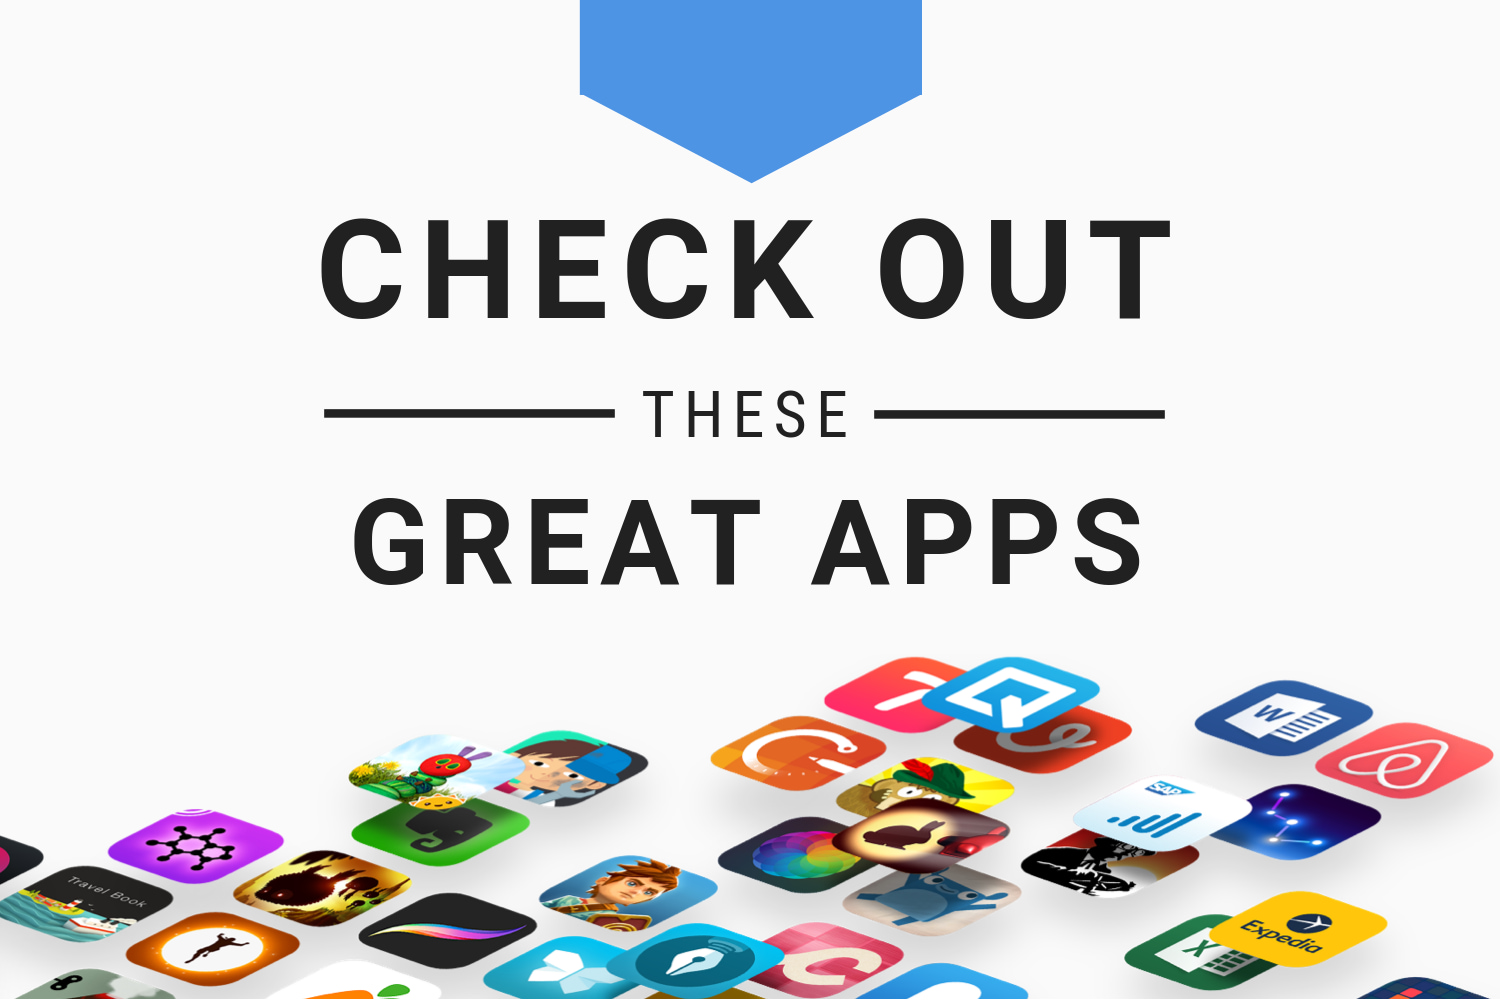 LifeViewer, Planny 3, Spkr, and other apps to check out this weekend